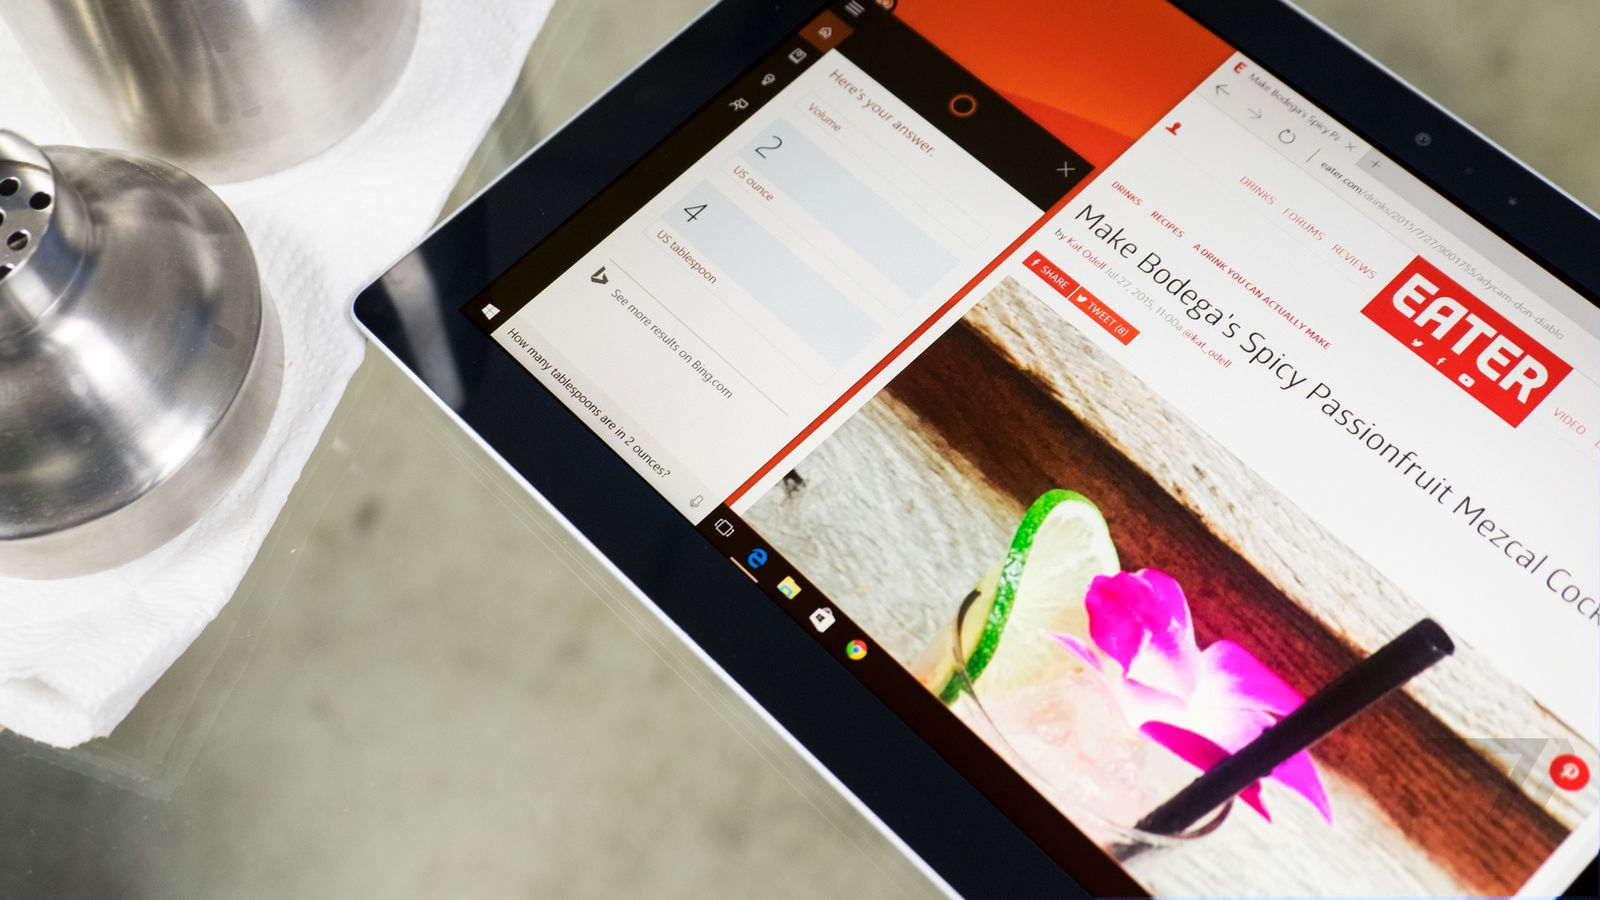 Windows 10's next major update will let Cortana float ...